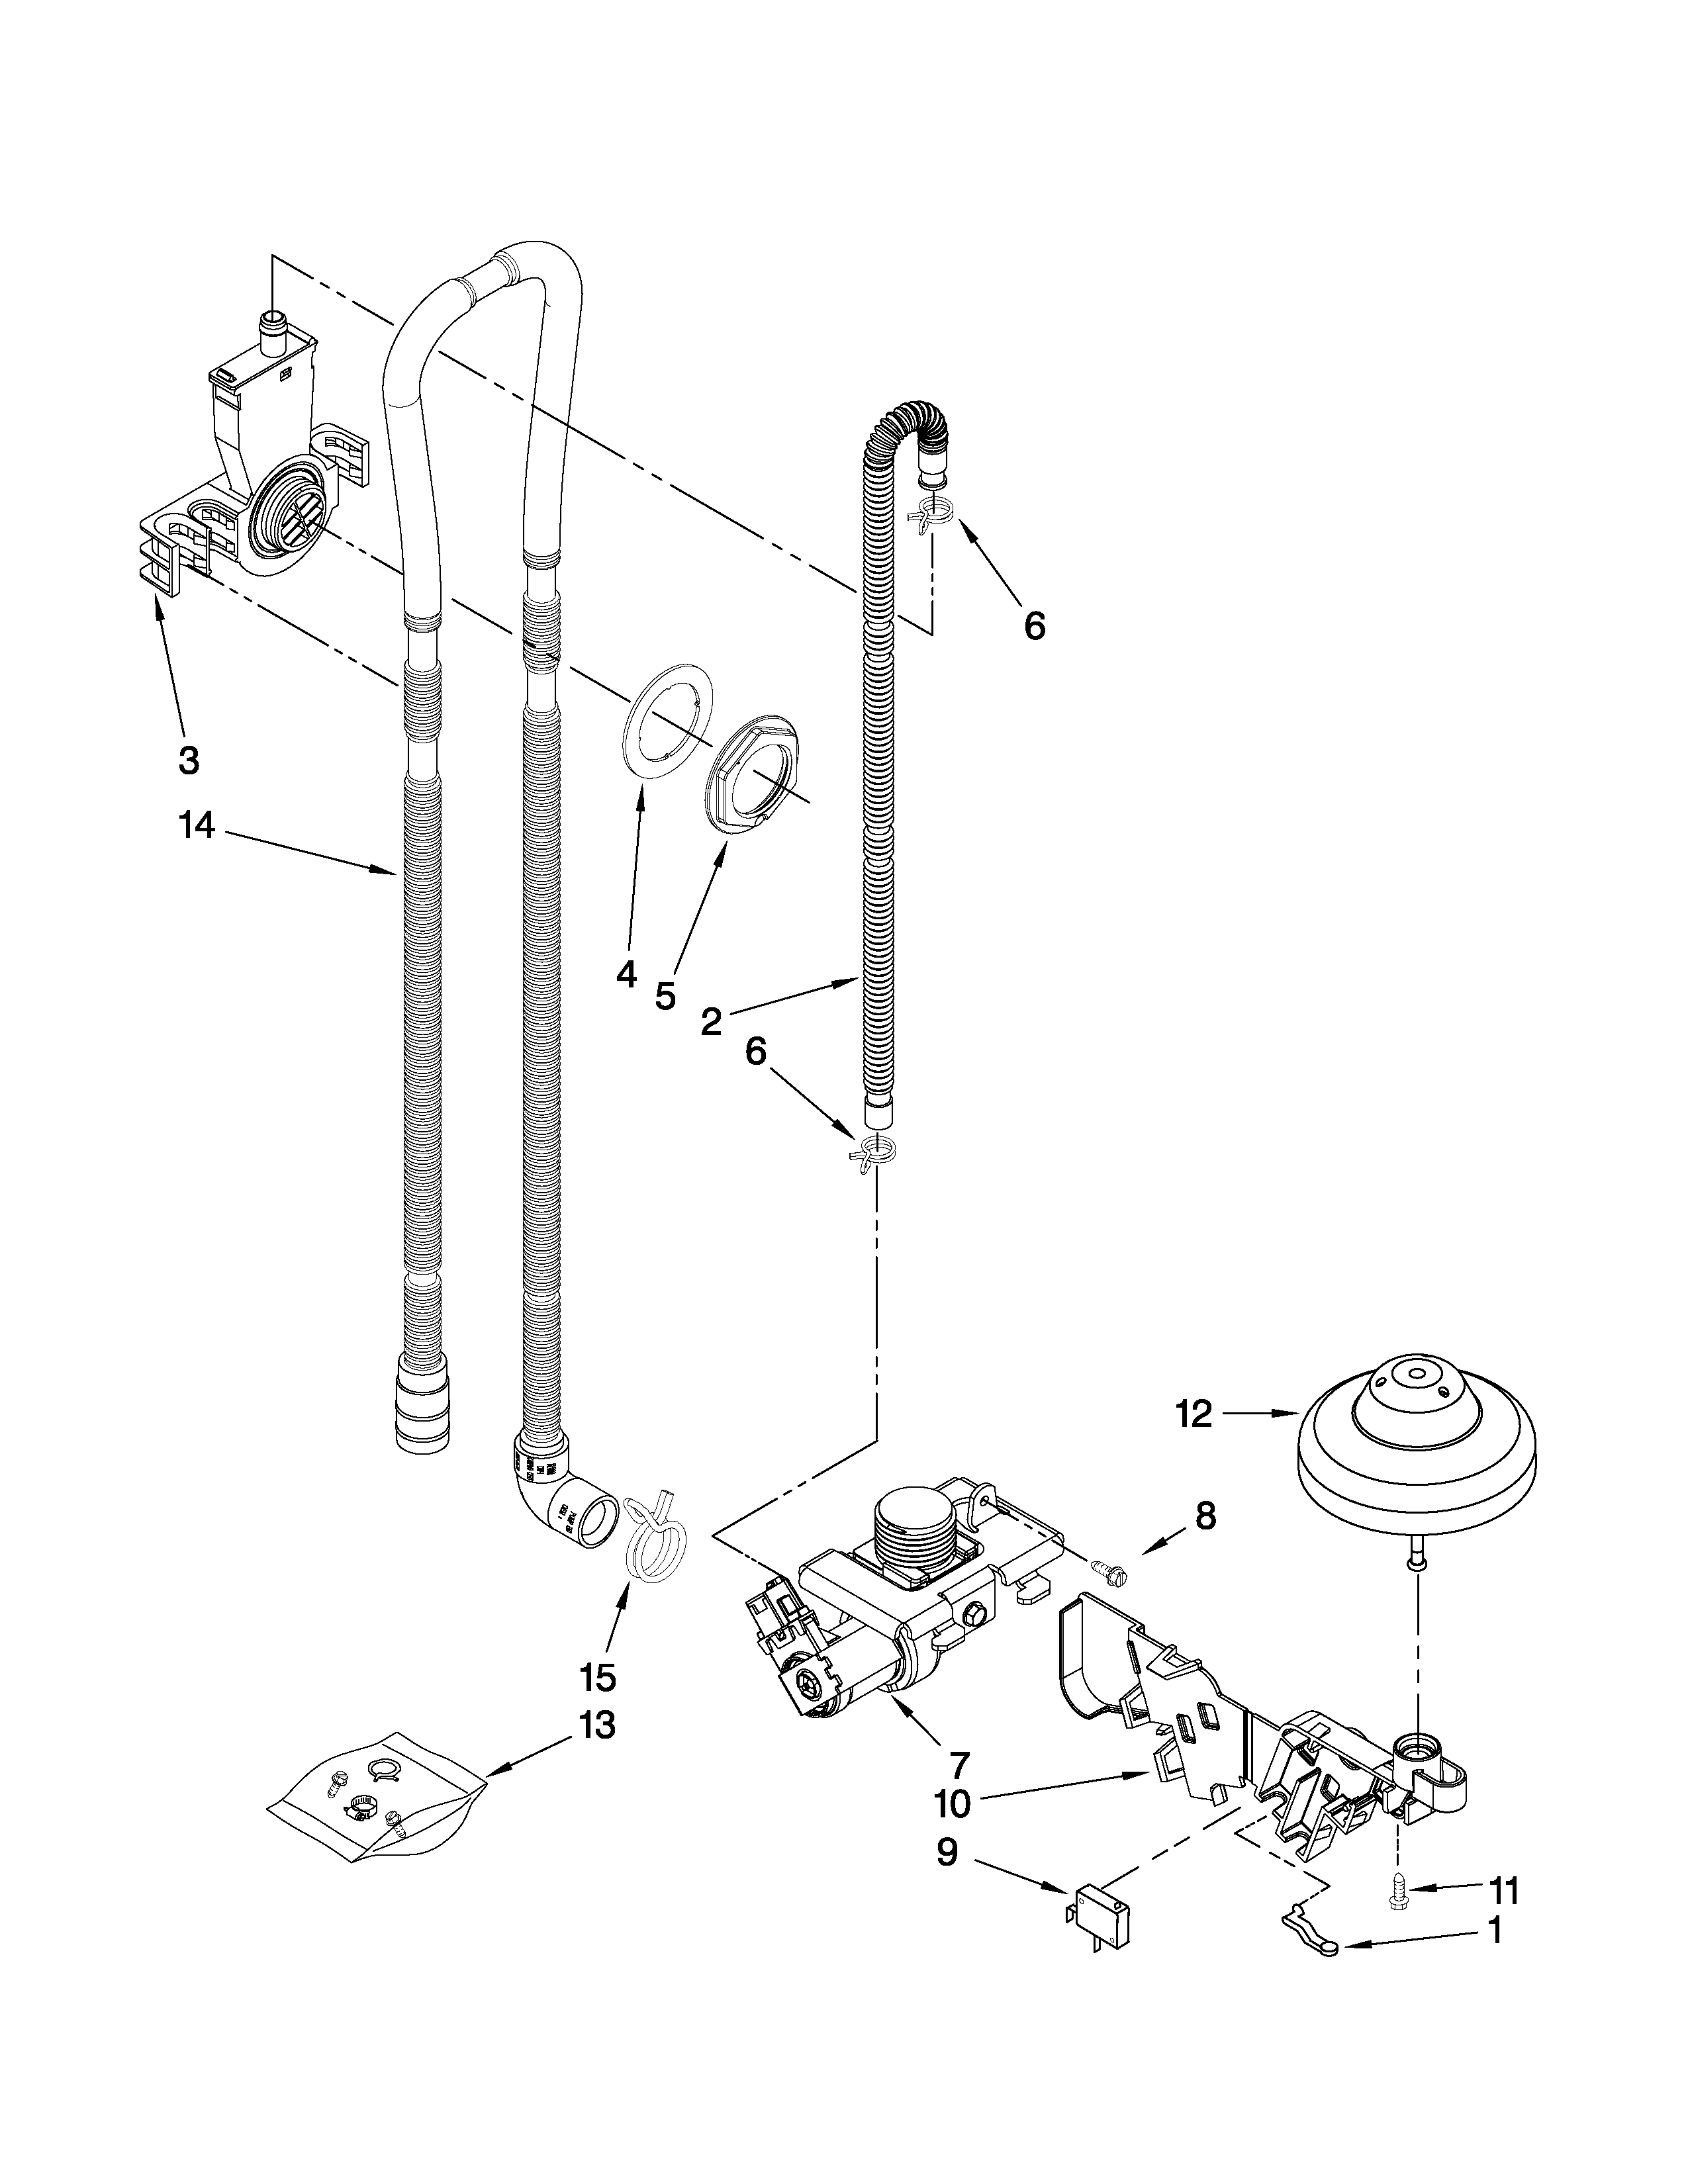 Estate TUD8700XS1 fill, drain and overfill parts diagram